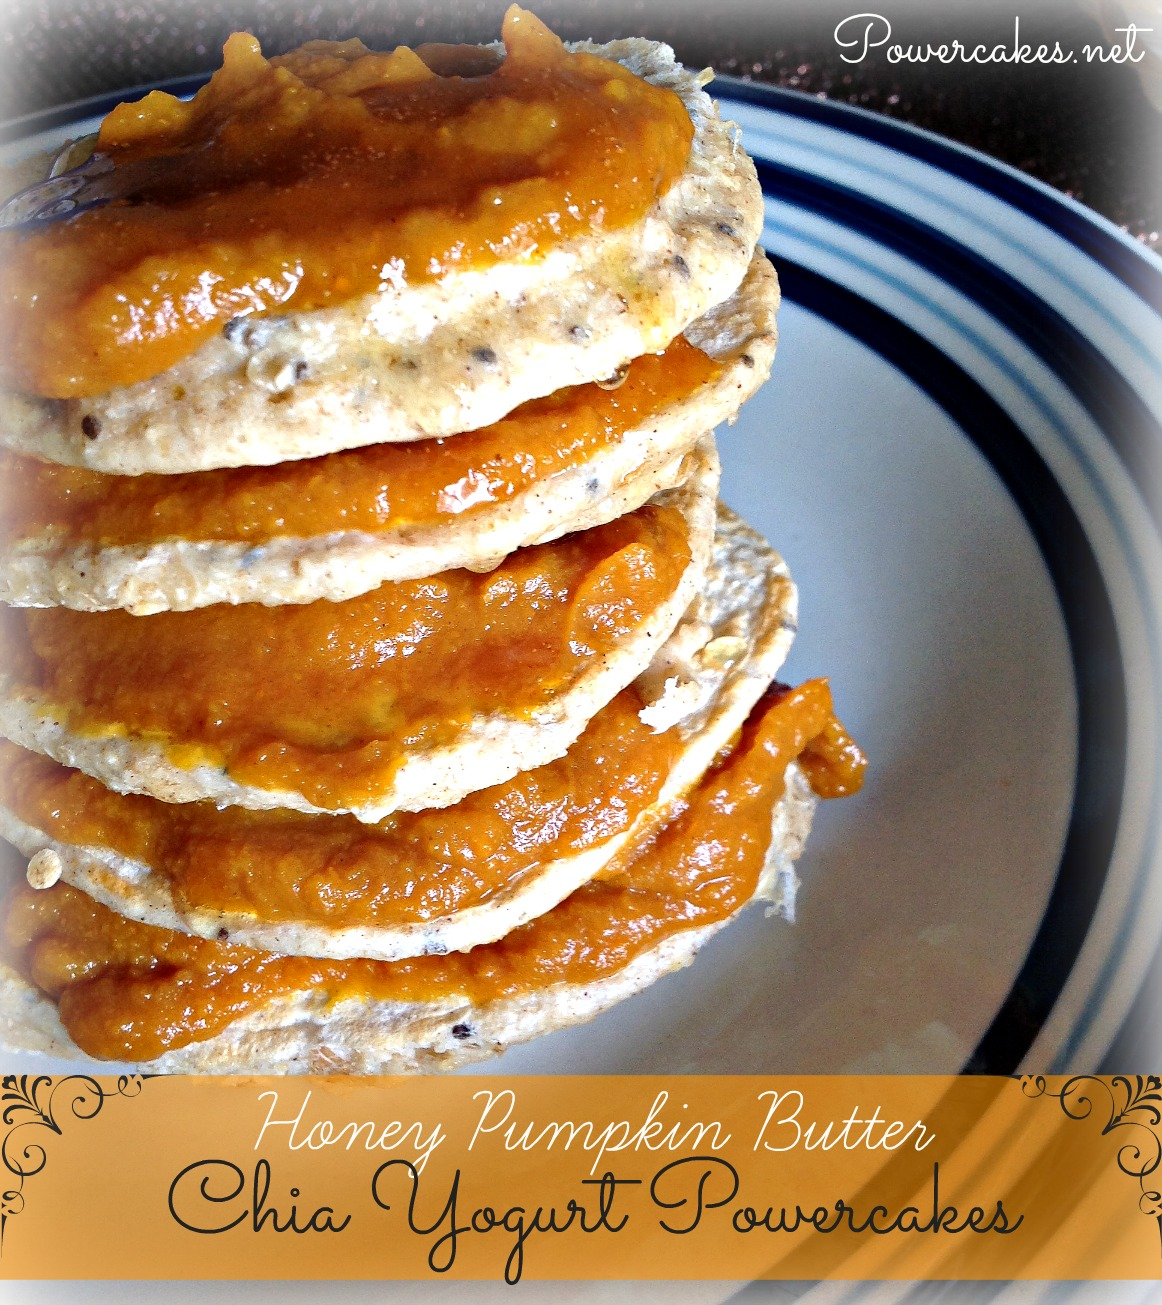 honey pumpkin butter powercakes